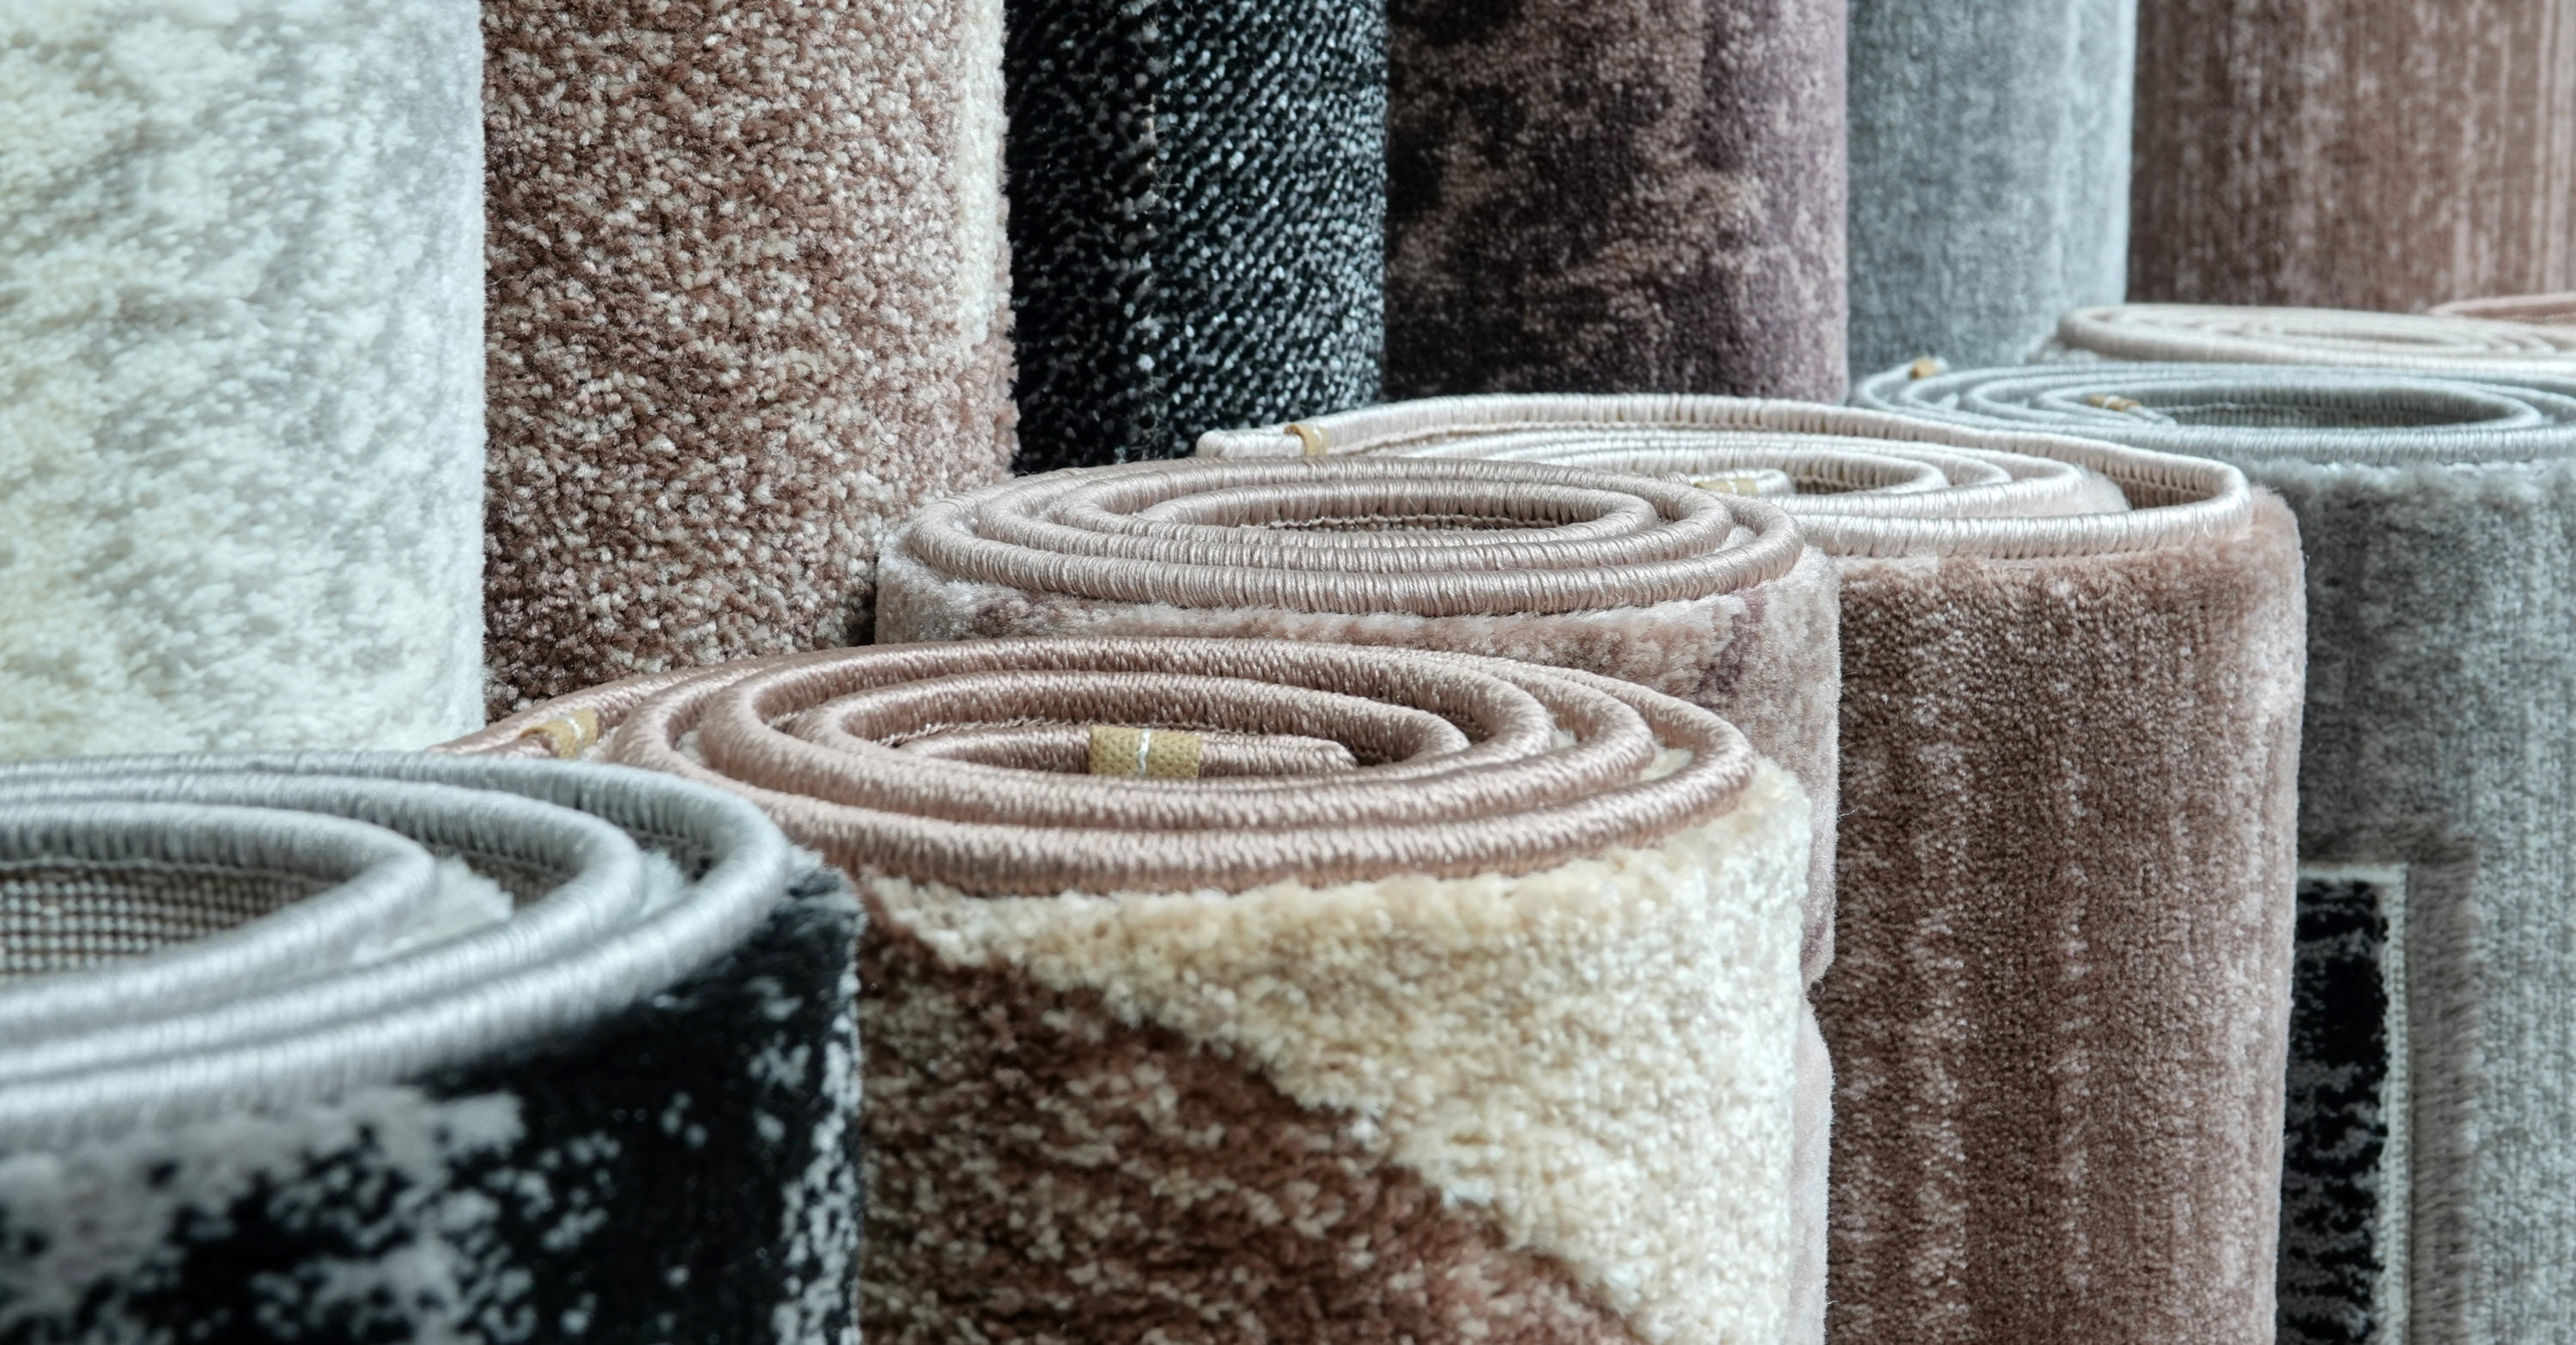 twelve rolled up rugs in various colour, stood upright, K & M Carpets & Interiors, Shaftesbury Mews, Bath, Whiteway, Twerton, Bear Flat, The Oval, Southdown